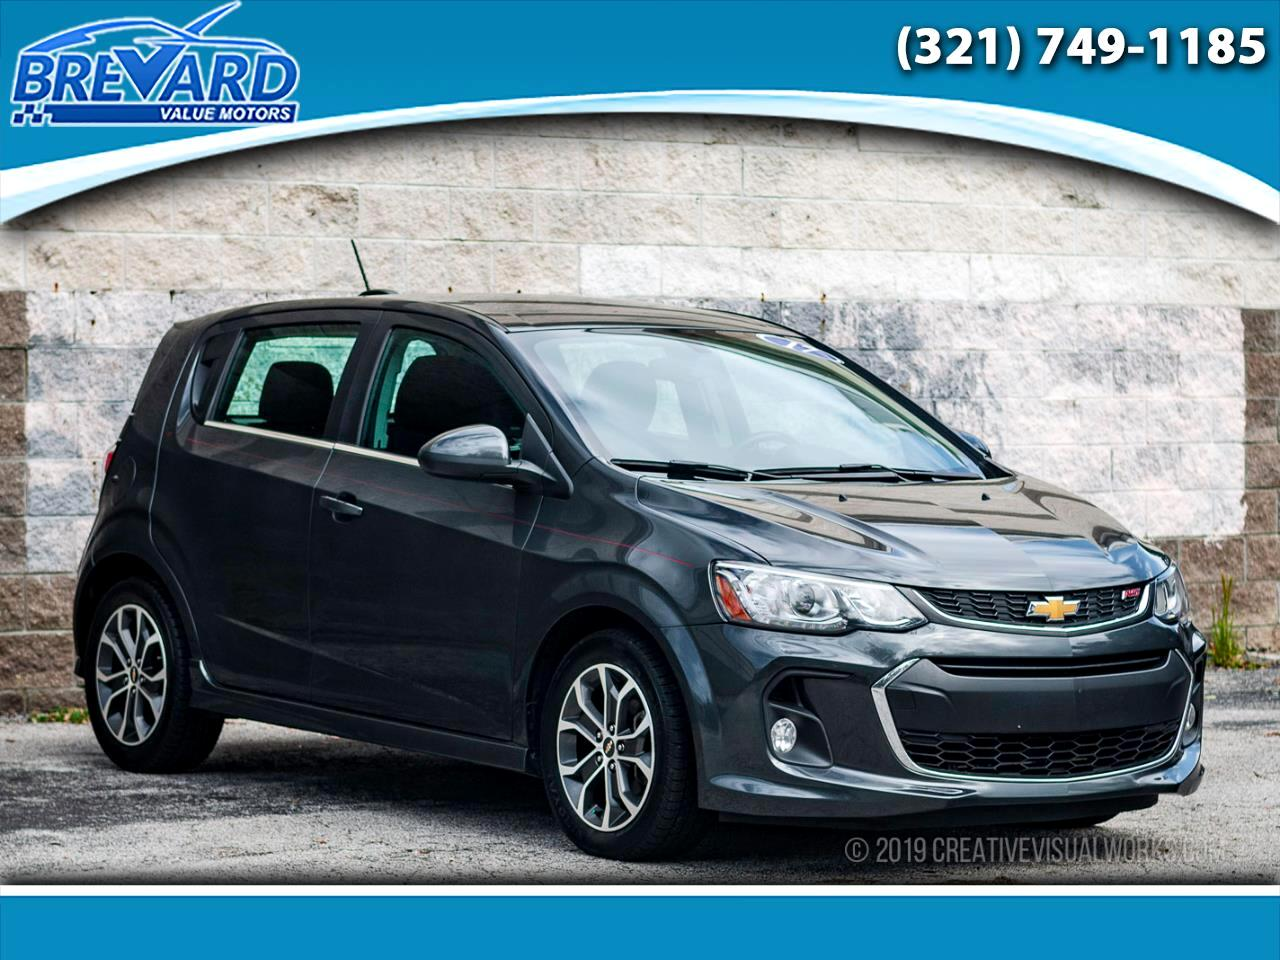 2017 Chevrolet Sonic LT Manual 5-Door